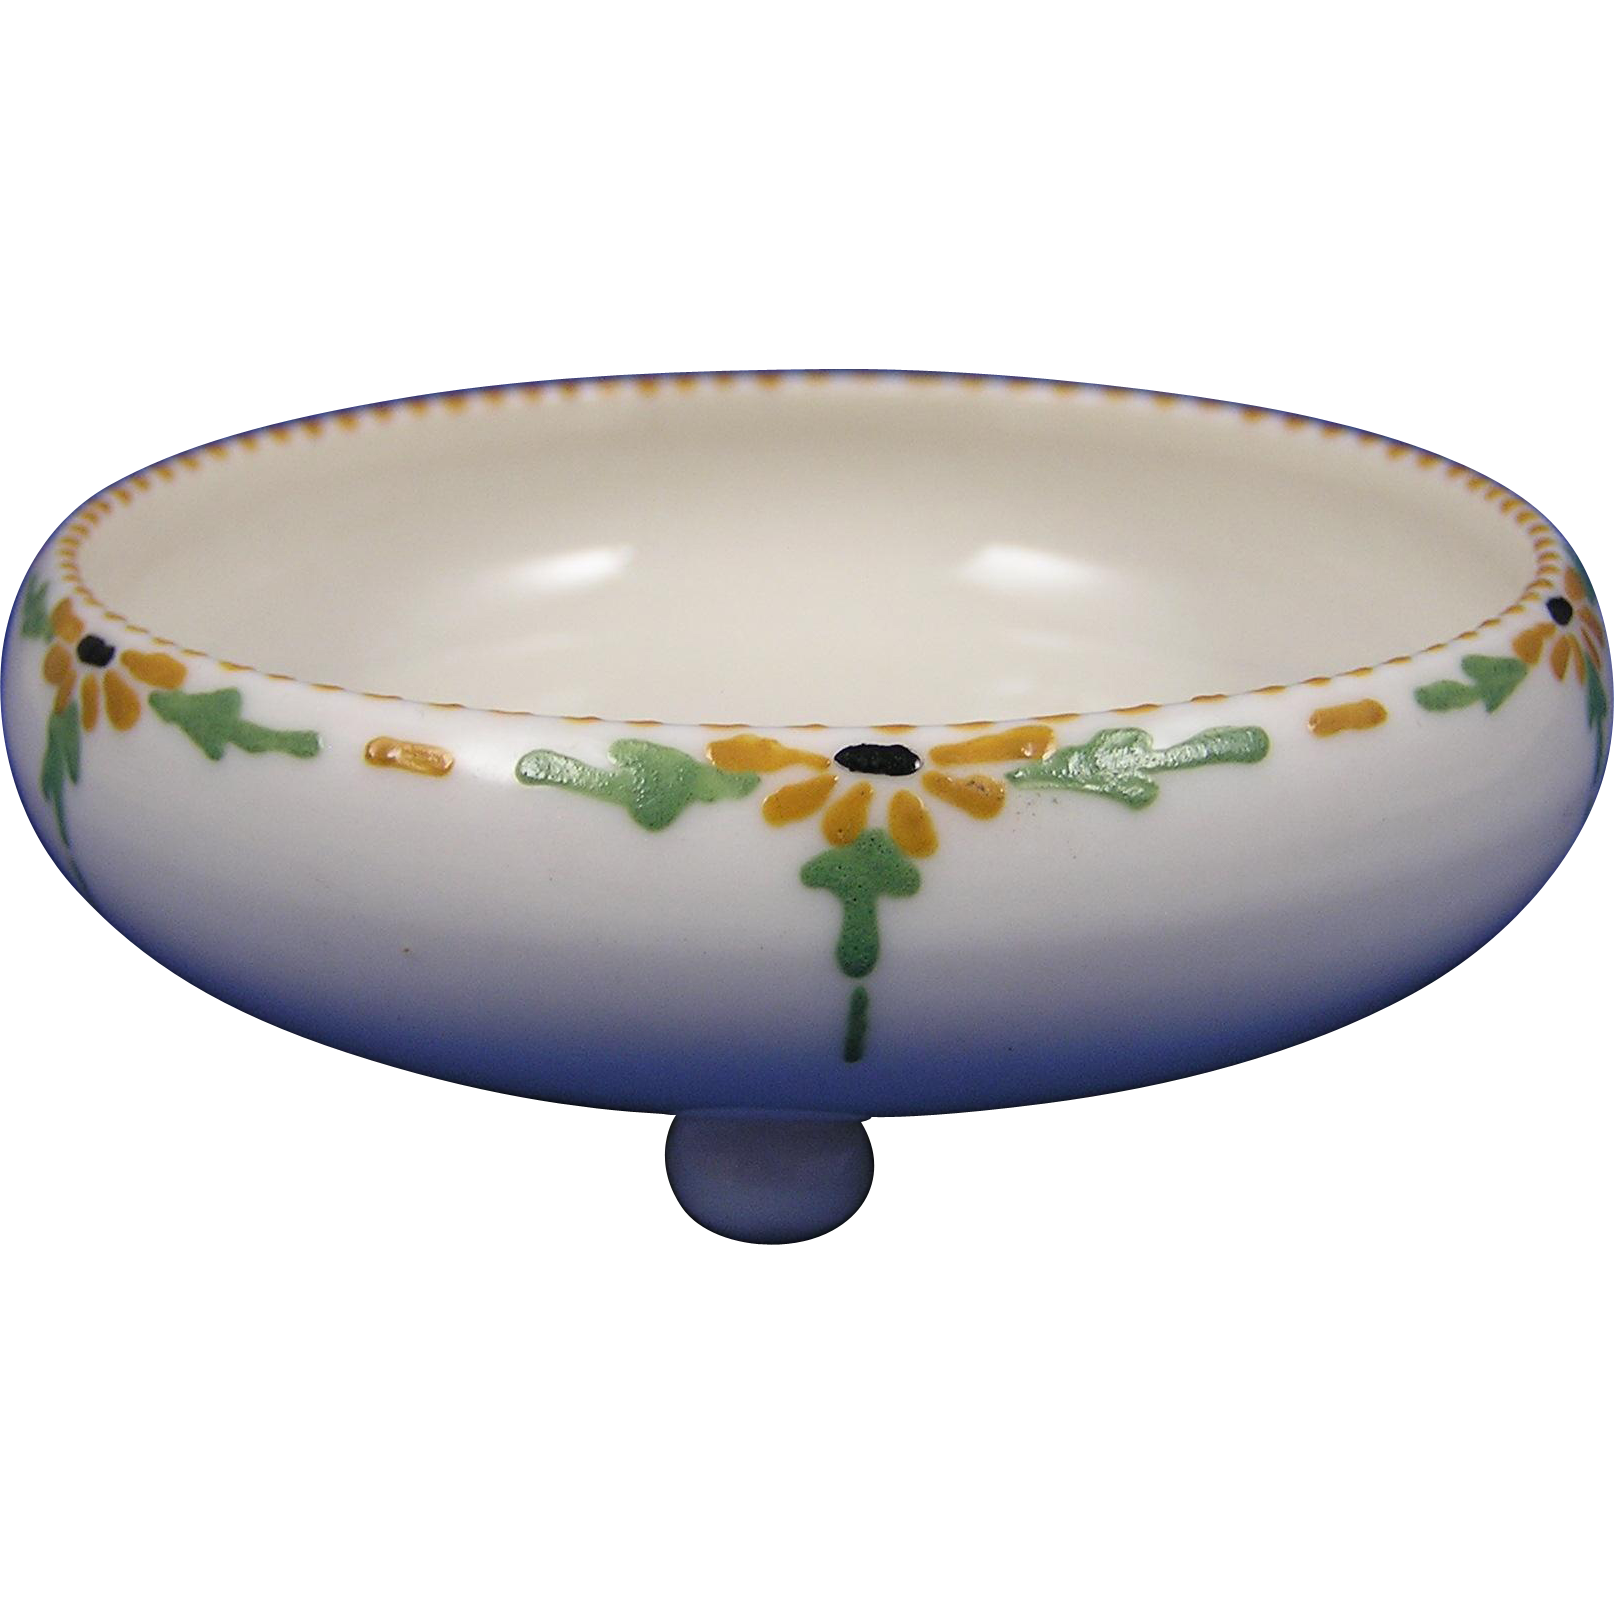 "Willetts Belleek Arts & Crafts Enameled Floral Motif Footed Dish (Signed ""E. King""/c.1879-1912)"